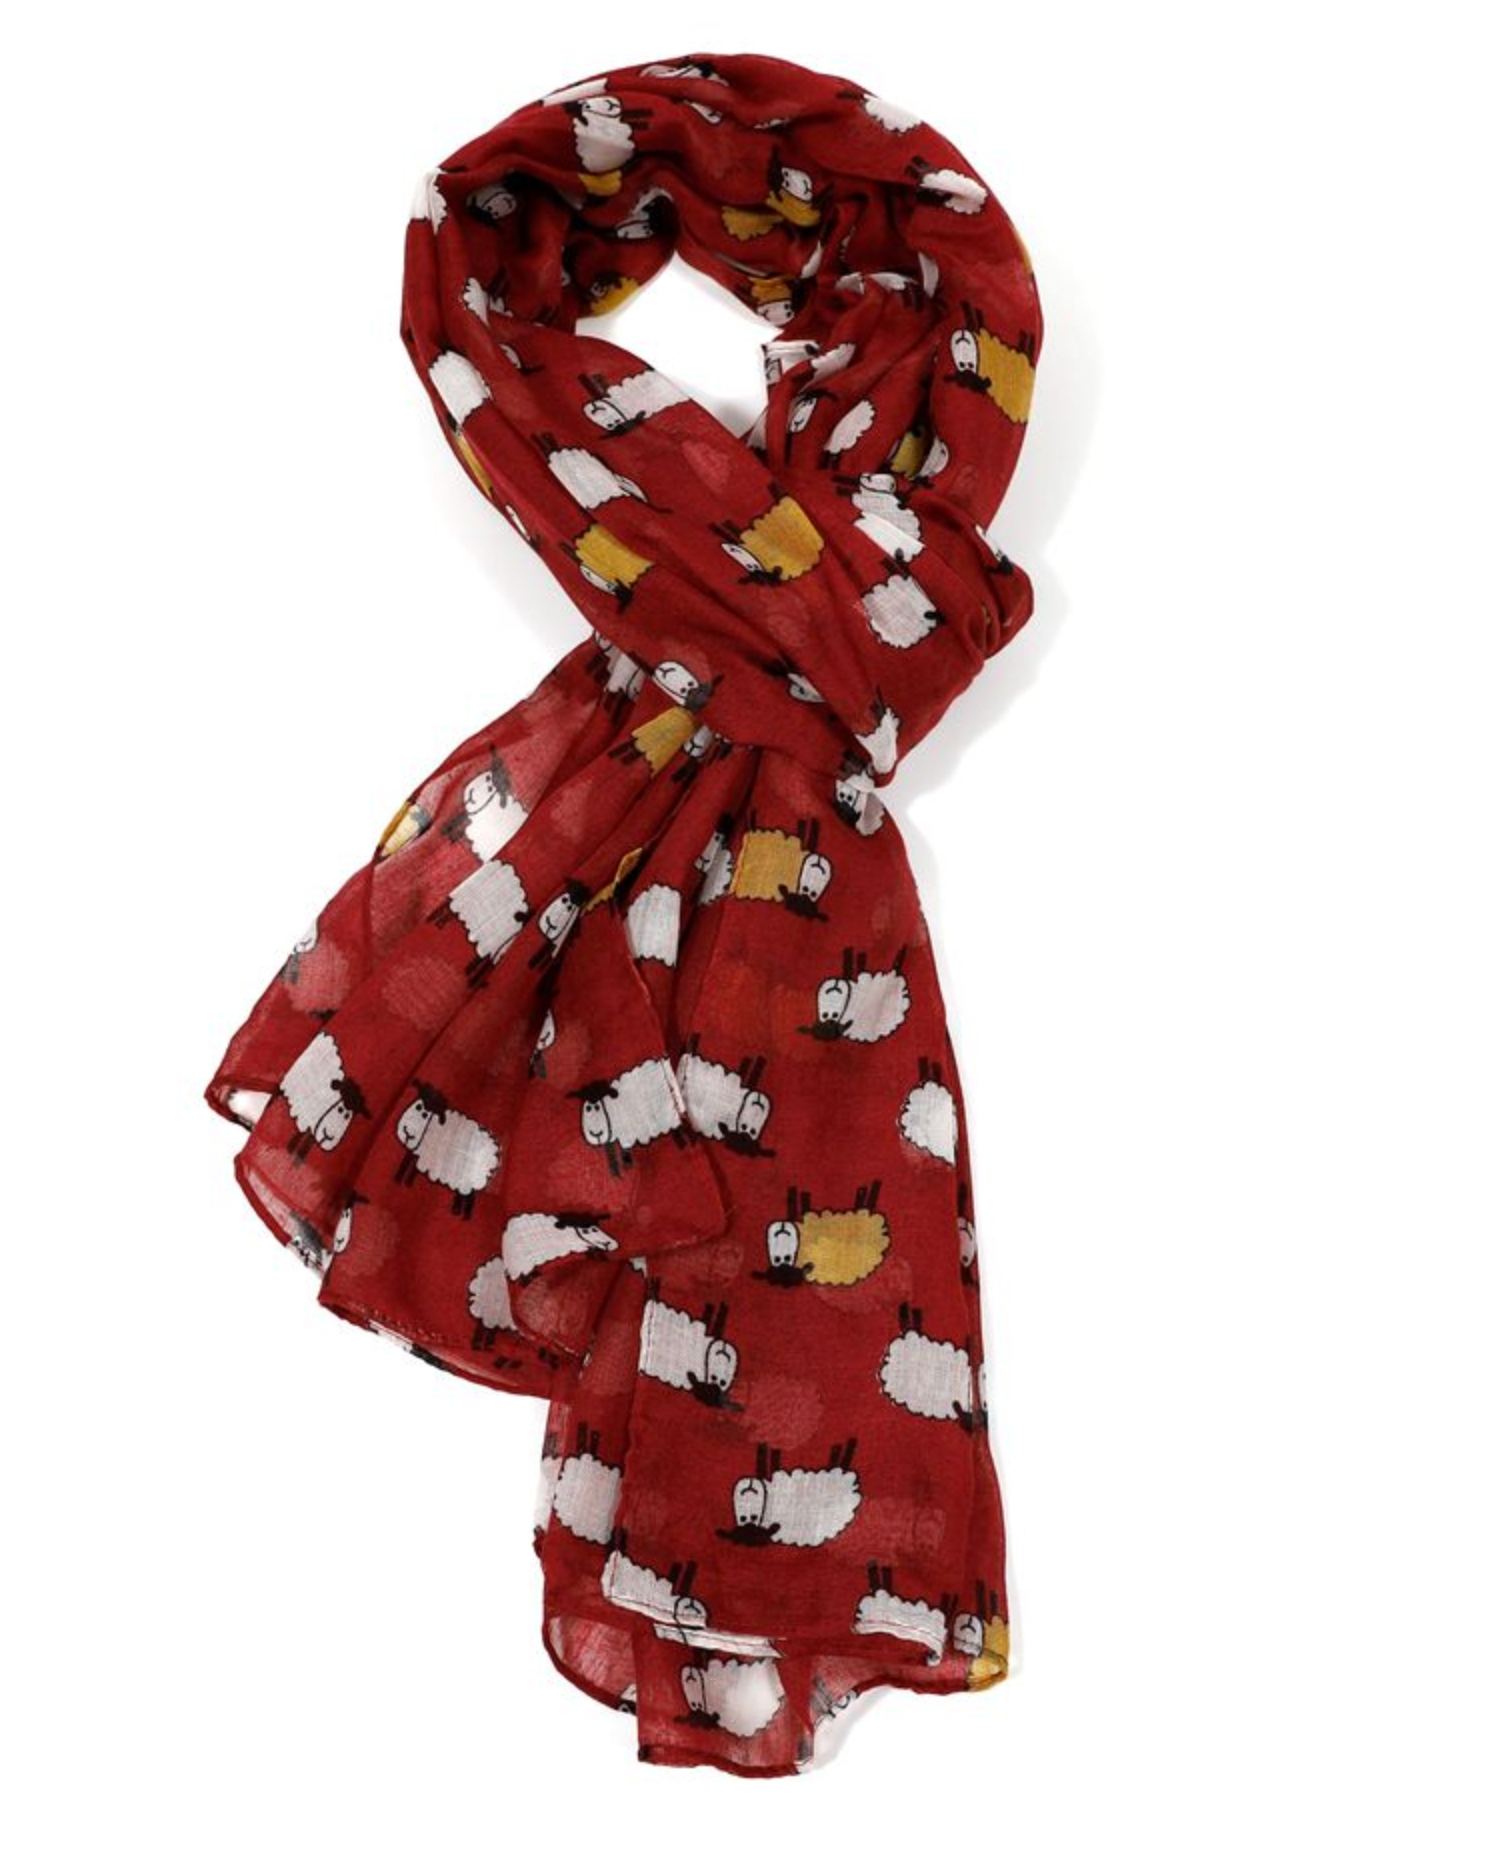 Sheep Scarf - Maroon